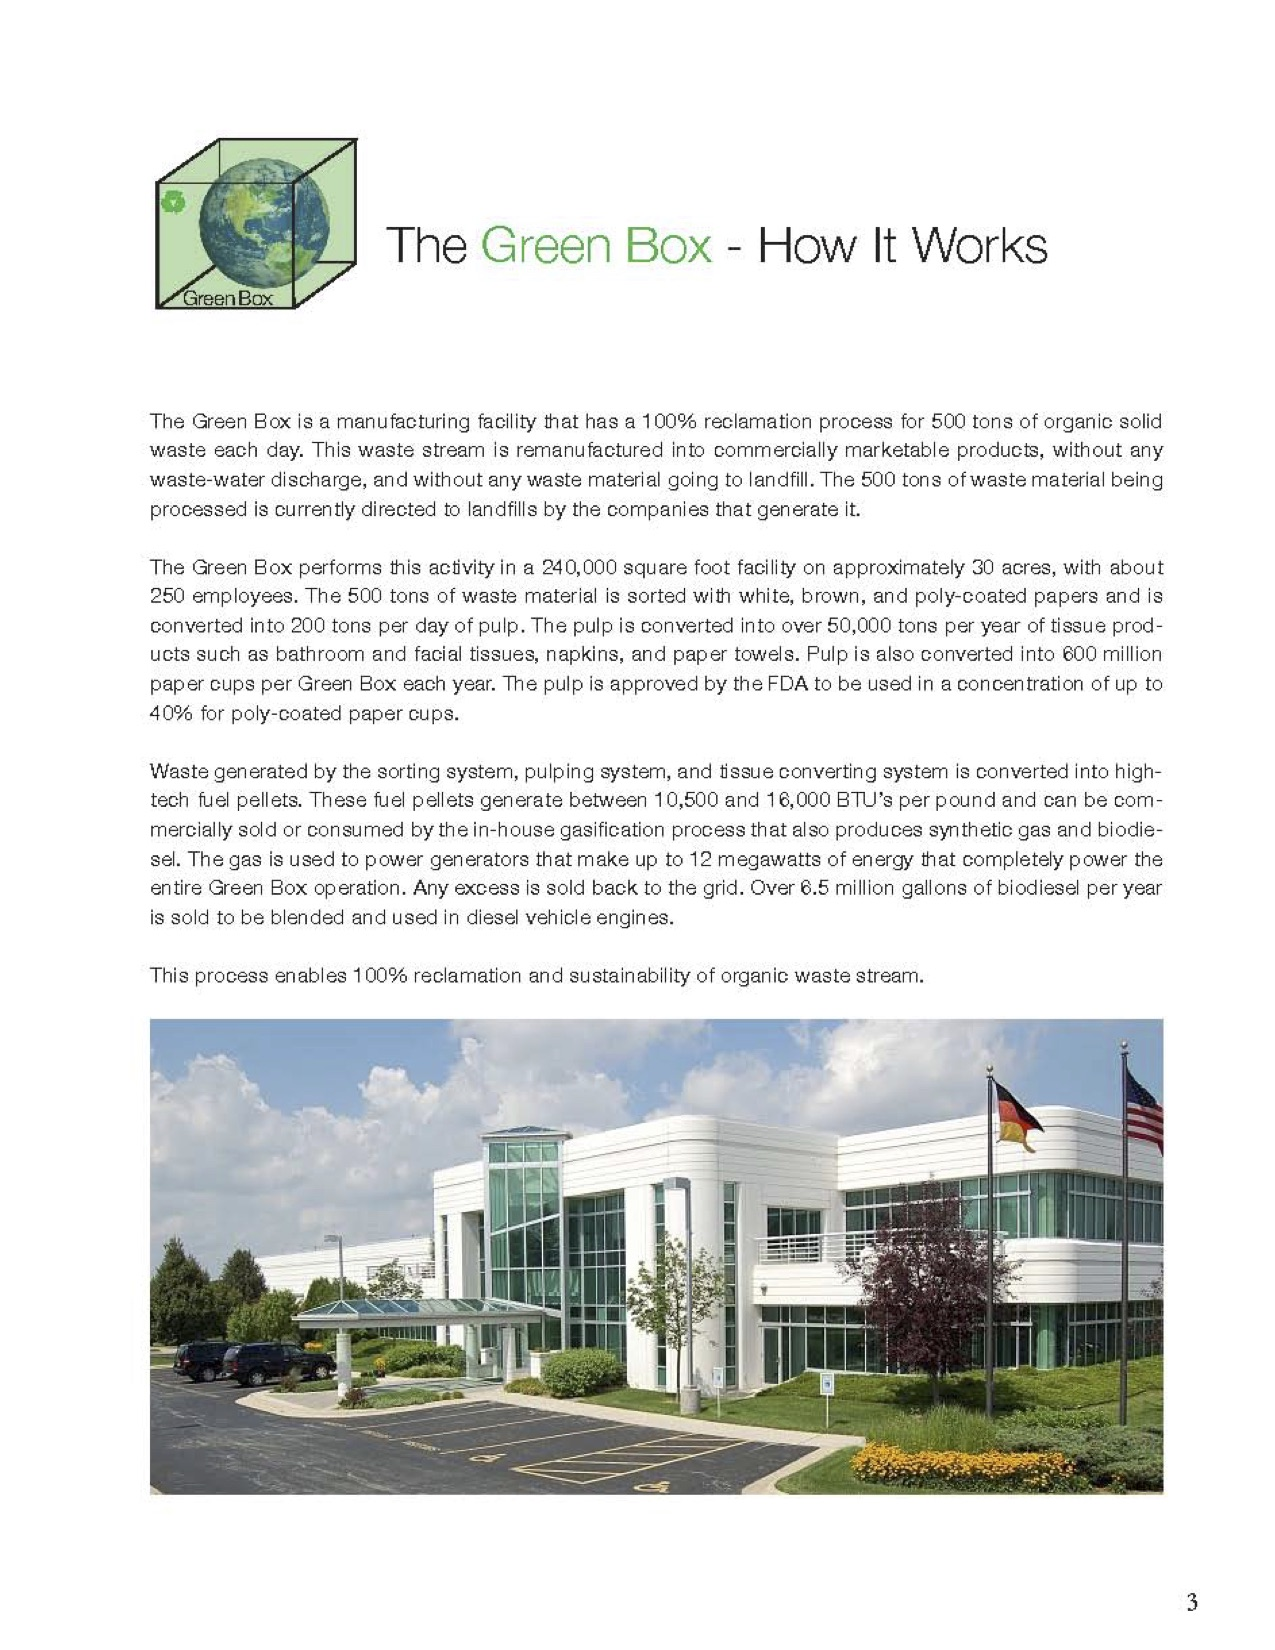 3 Green Box Color Brochure